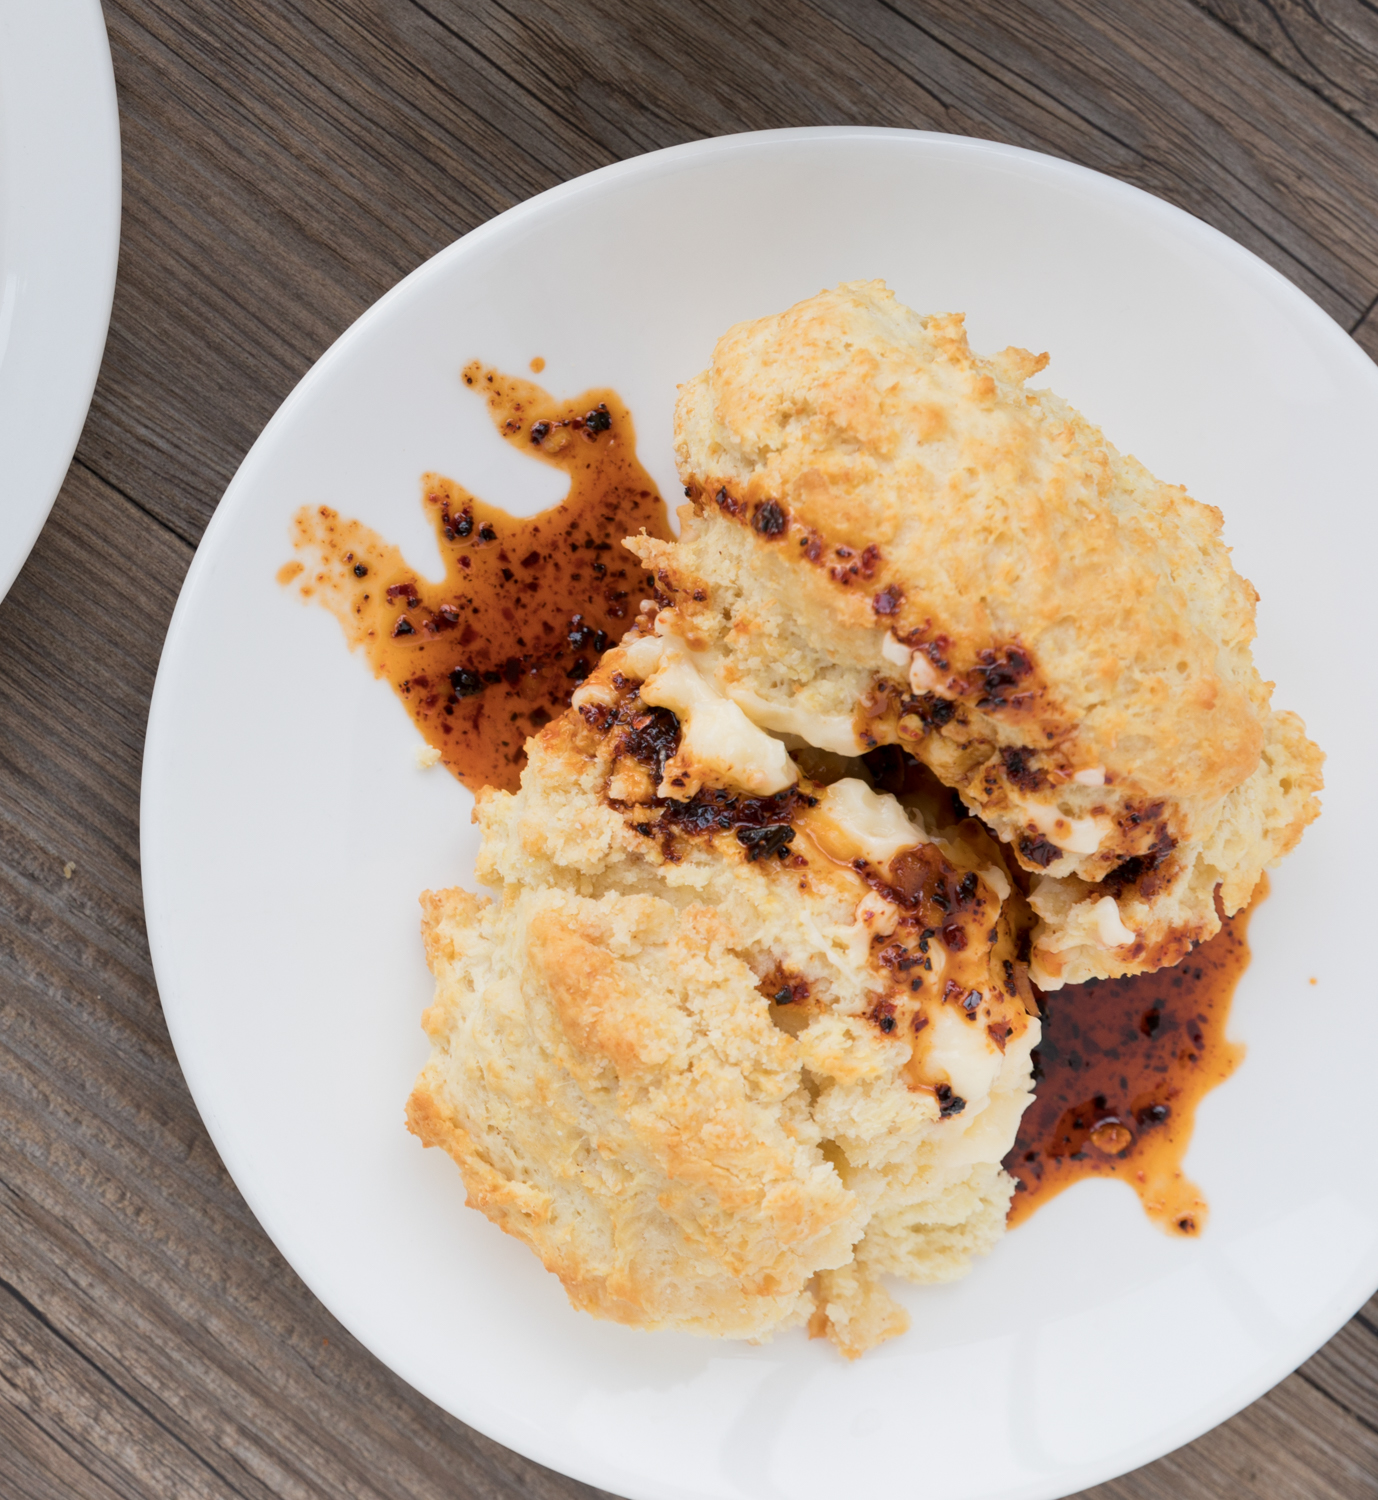 Biscuit with butter and chorizo honey glaze{ }/ Image: Marlene Rounds // Published: 1.6.19